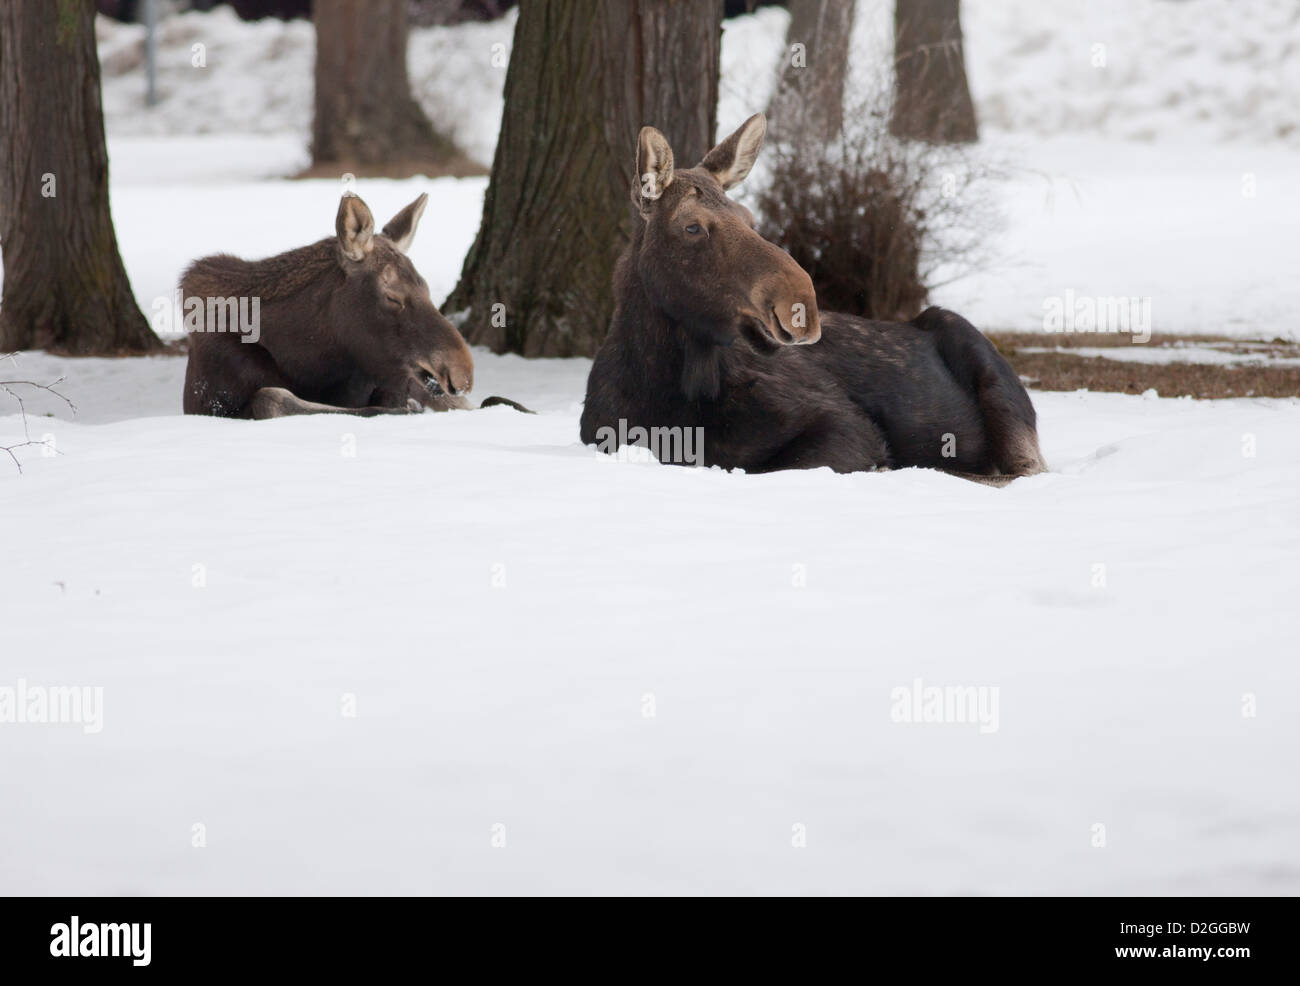 Two moose in the snow. - Stock Image